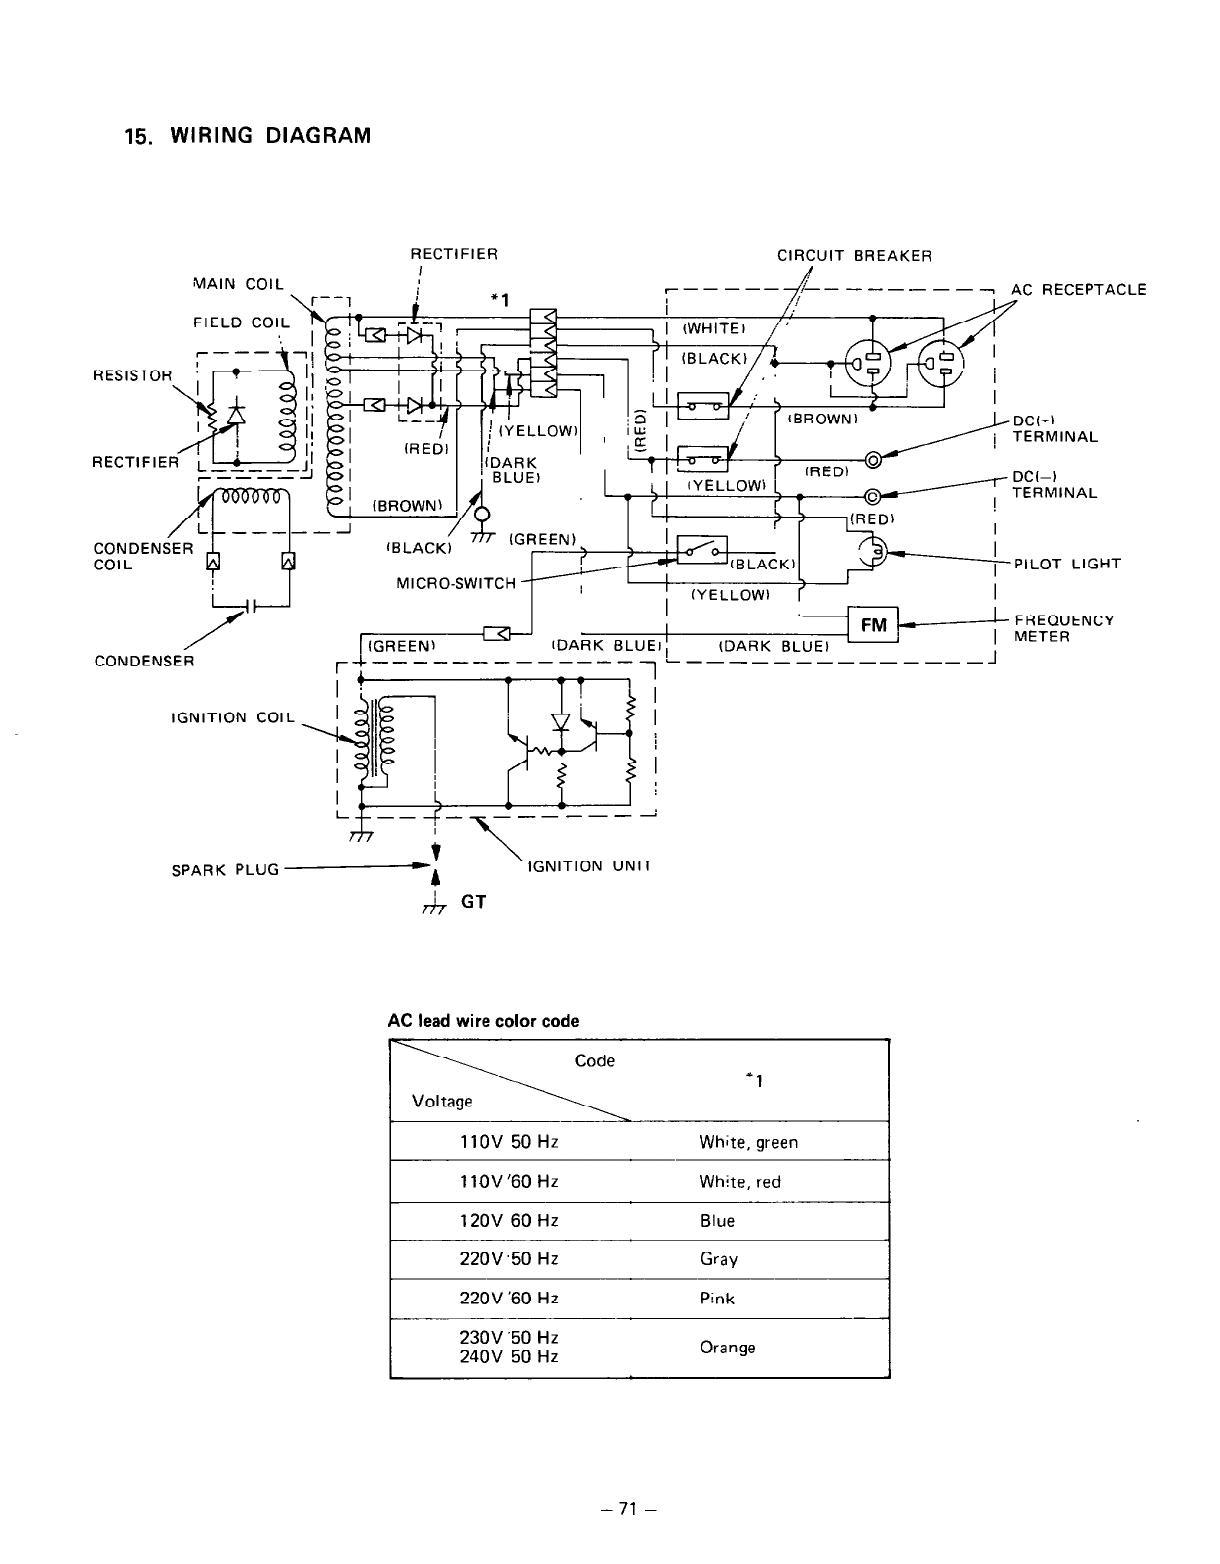 page 74 of subaru robin power products portable generator r600 user rh lawnandgarden manualsonline com Subaru Stereo Wiring Harness Diagram 2002 Subaru Forester Wiring-Diagram